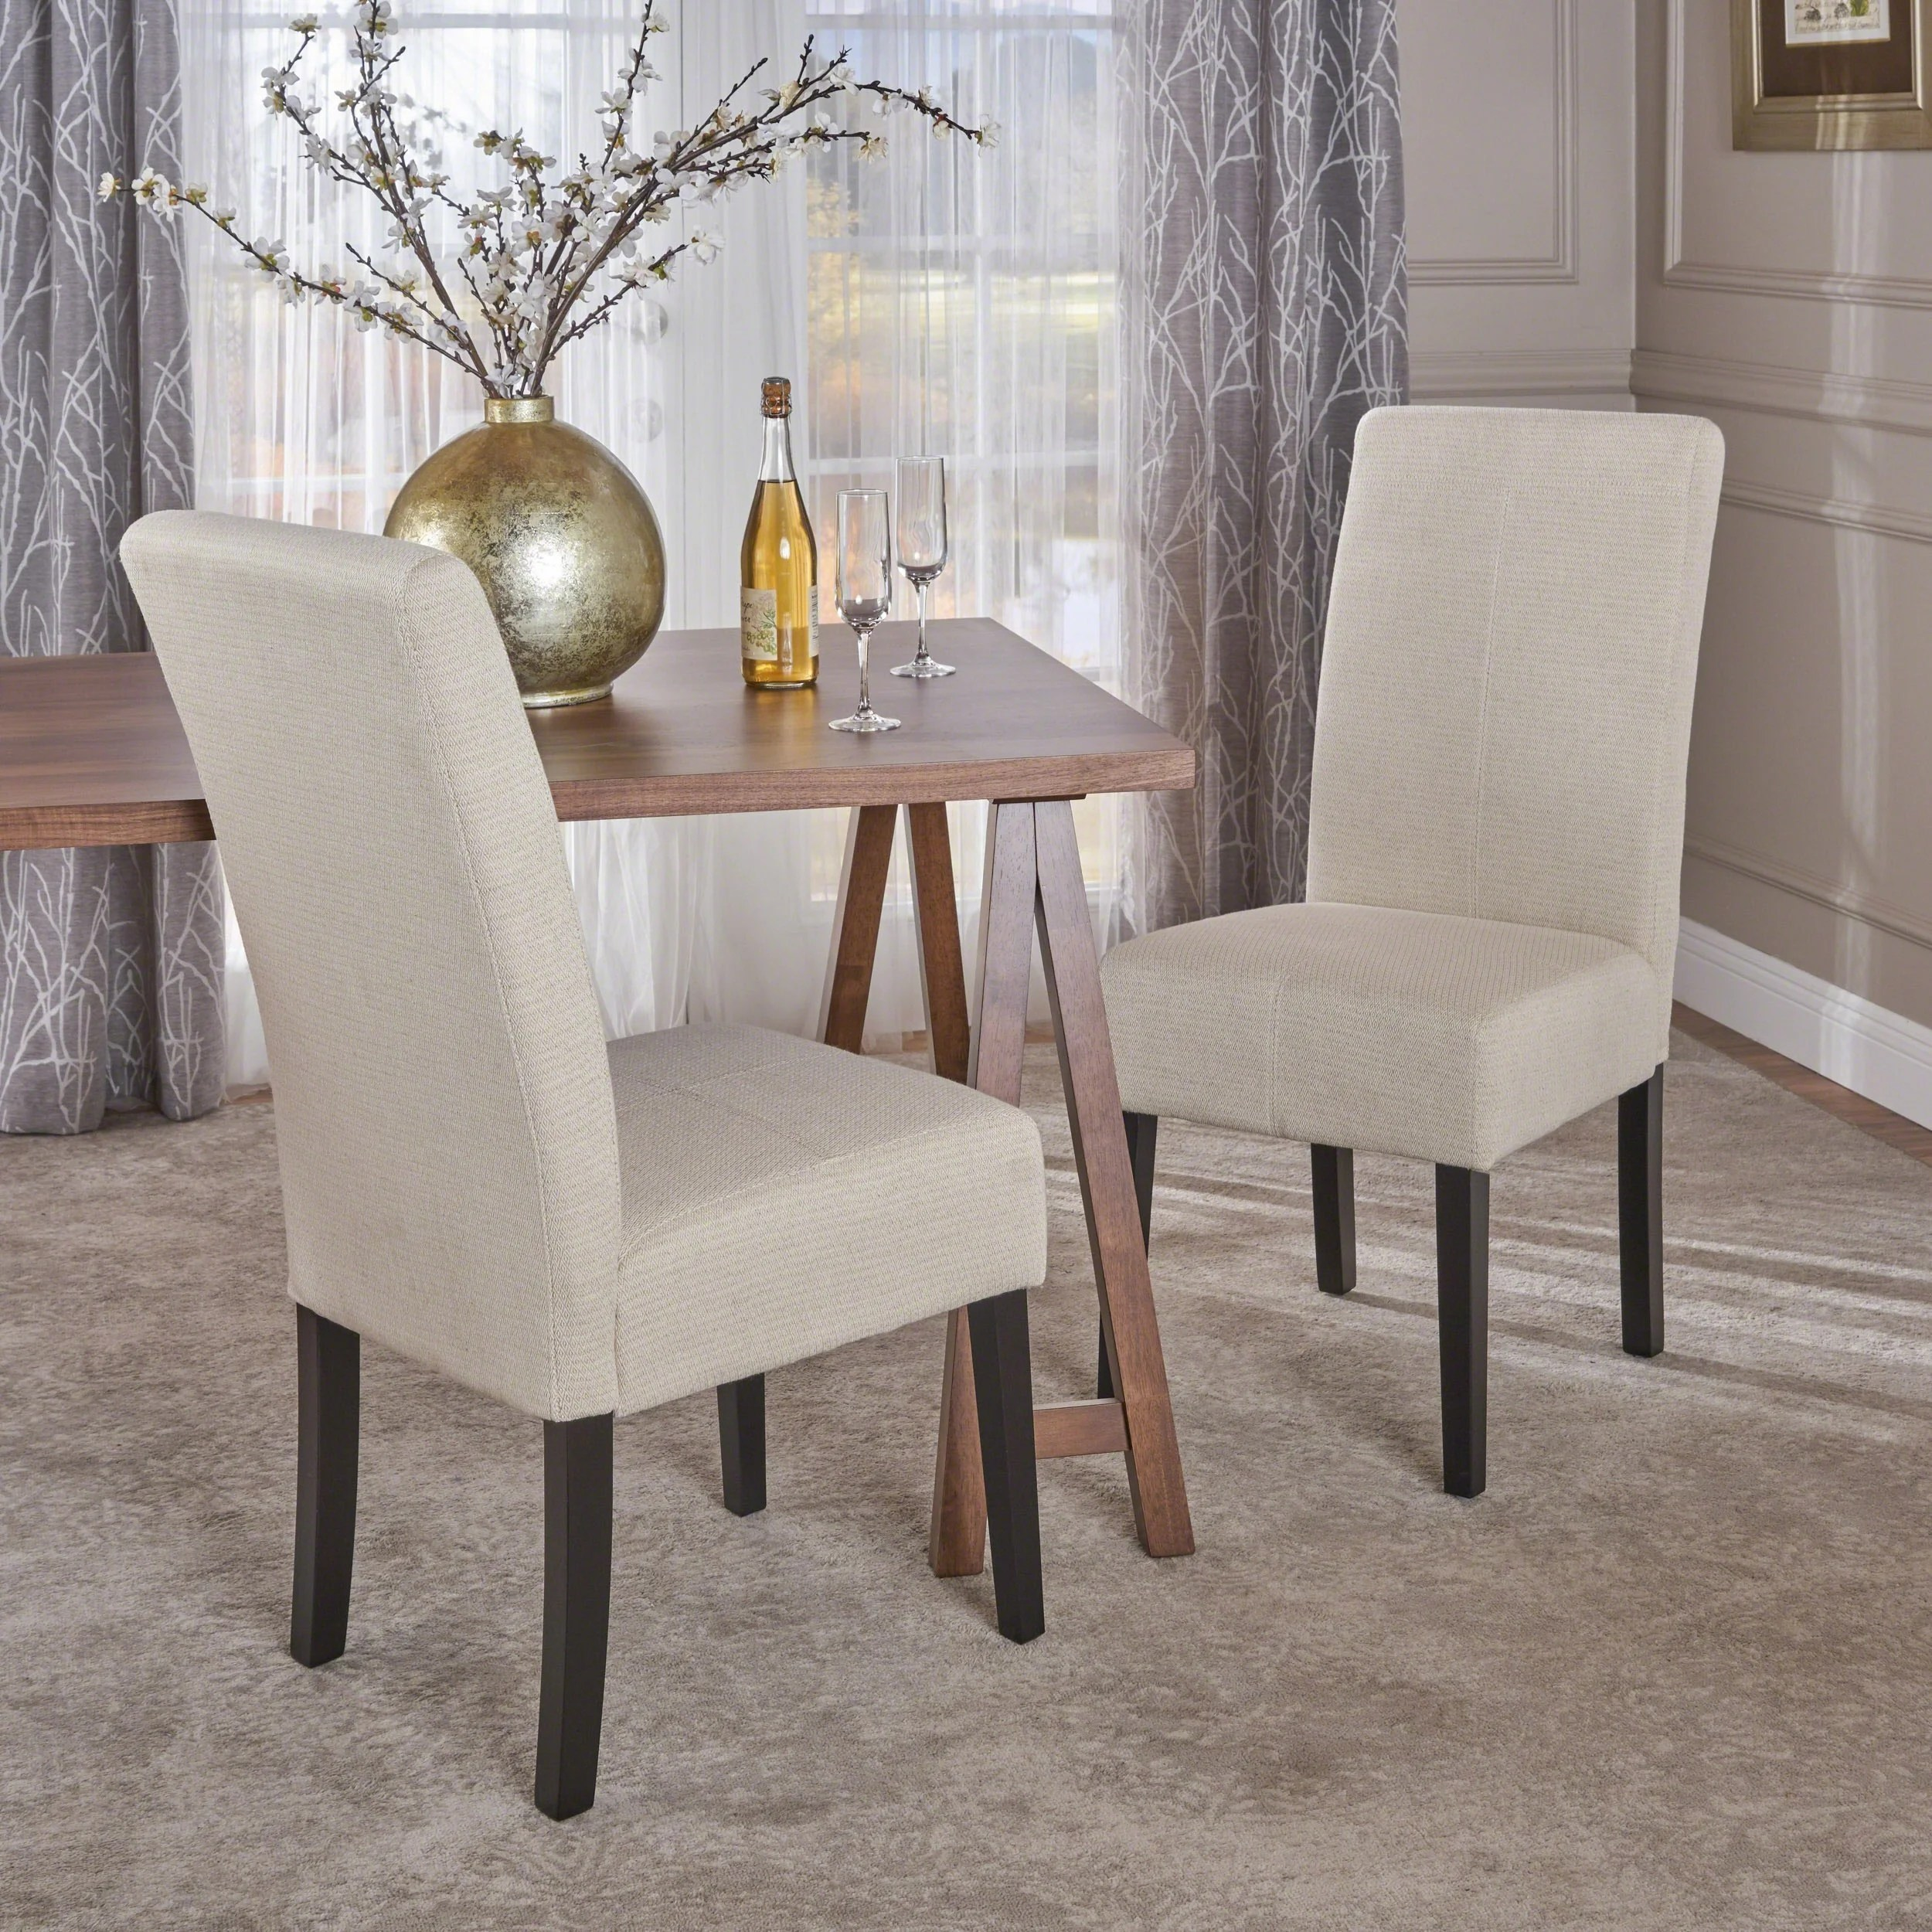 Patterned Dining Room Chairs Details About T Stitch Pattern Beige Fabric Dining Chair Set Of 2 By Christopher Knight Home